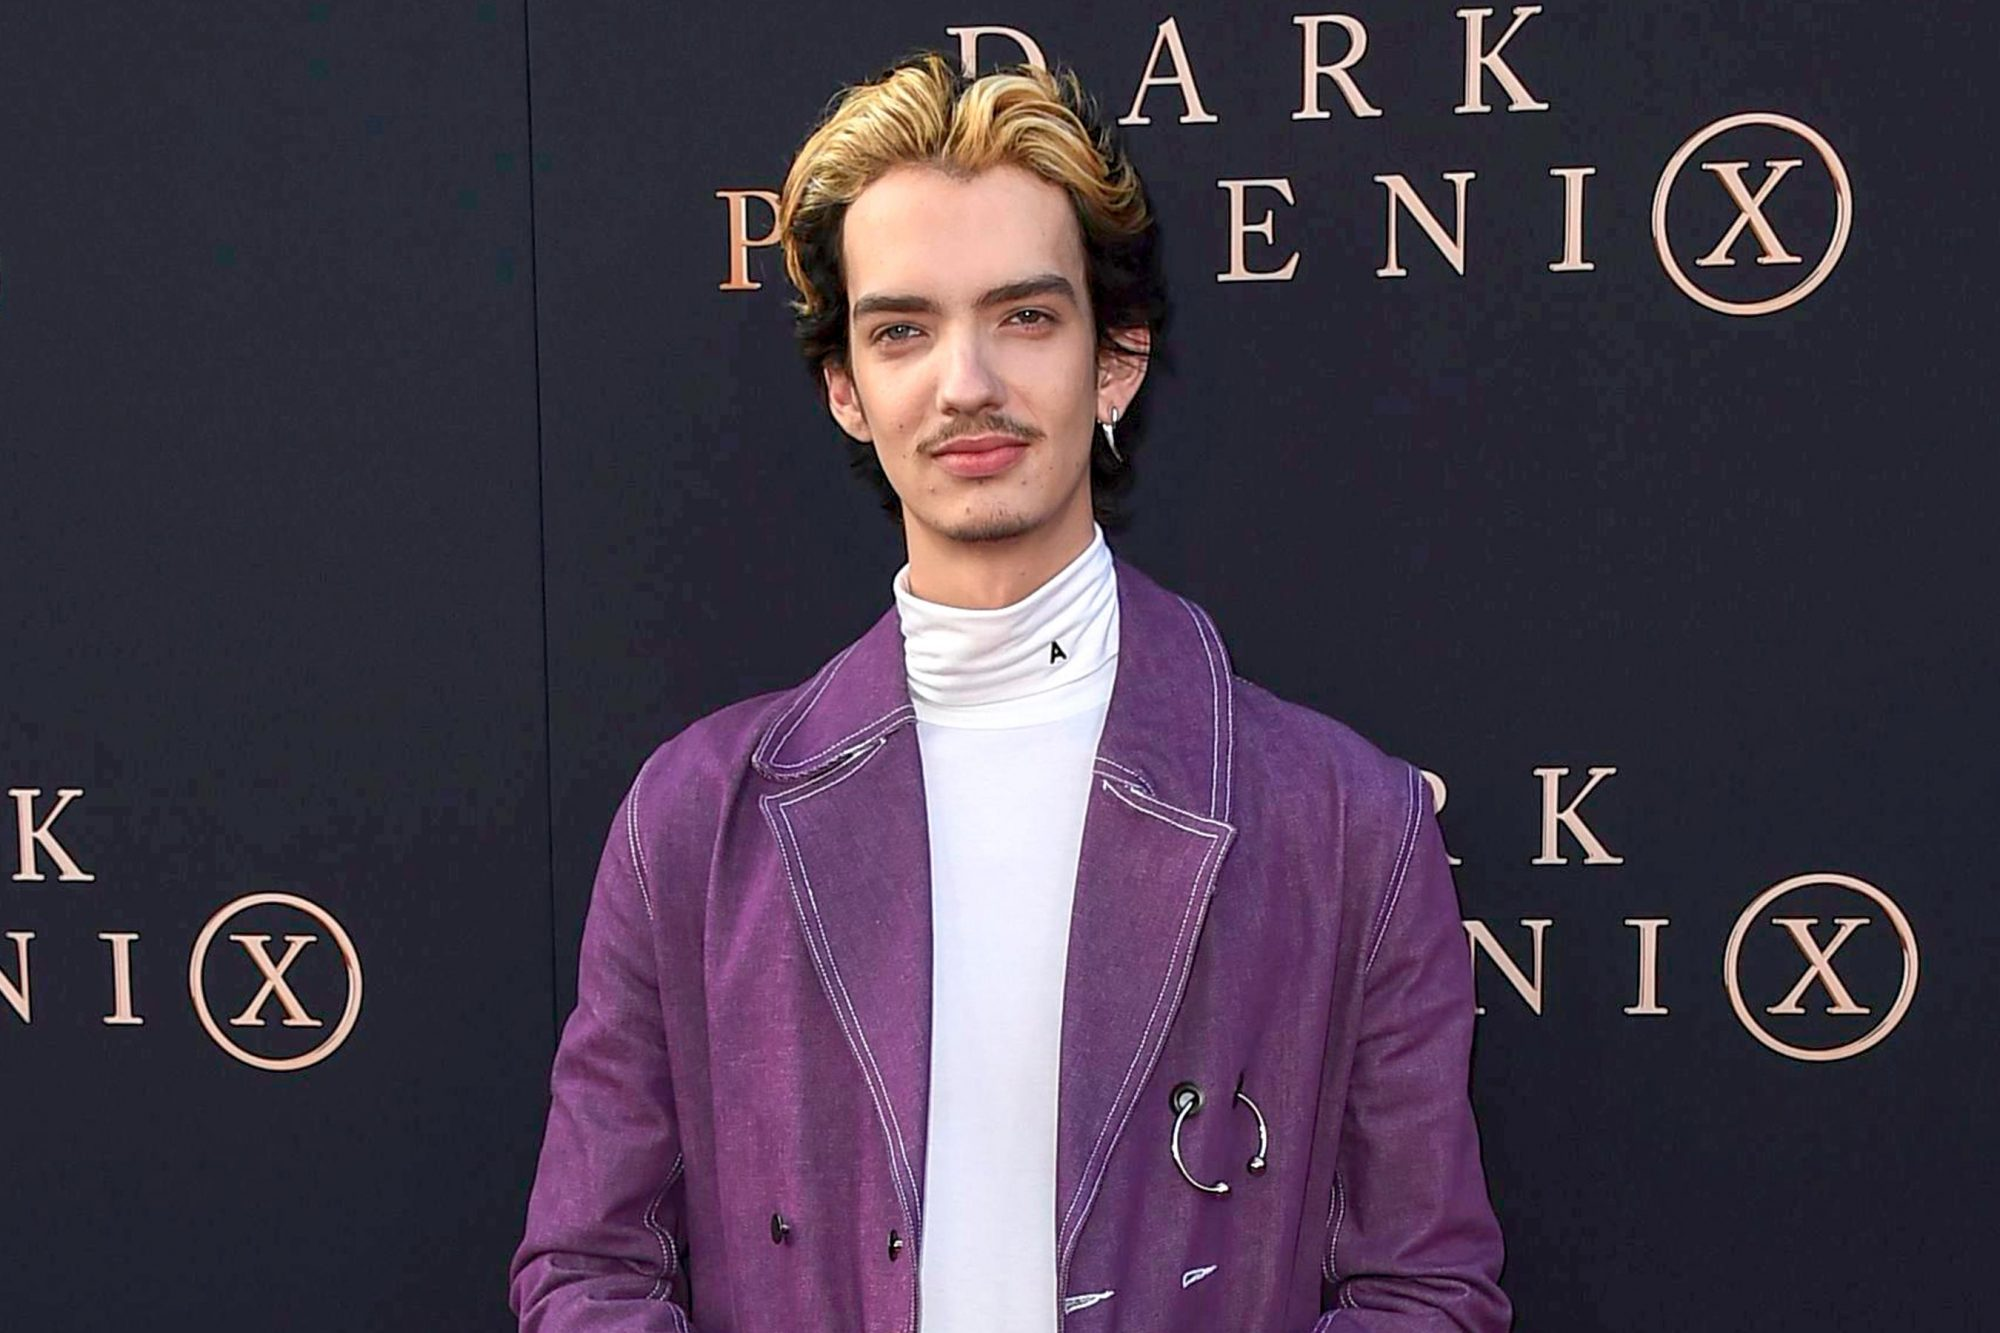 """Kodi Smit-McPhee arrives at the Los Angeles premiere of """"Dark Phoenix"""" at TCL Chinese Theatre on LA Premiere of """"Dark Phoenix"""", Los Angeles, USA - 04 Jun 2019"""